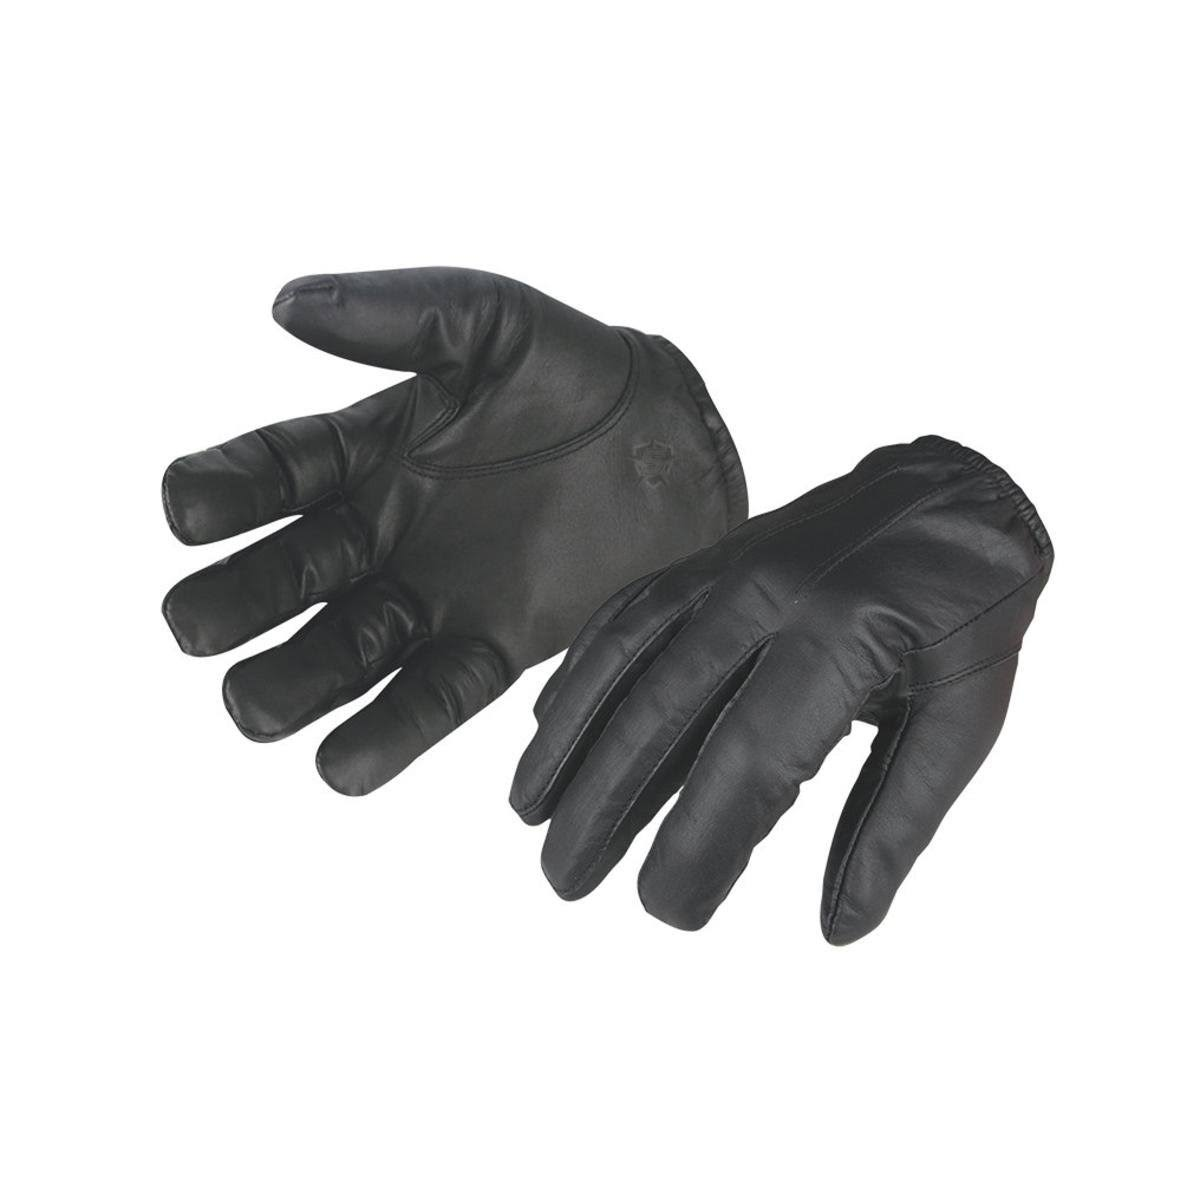 5ive Star Gear Search Gloves Black Small